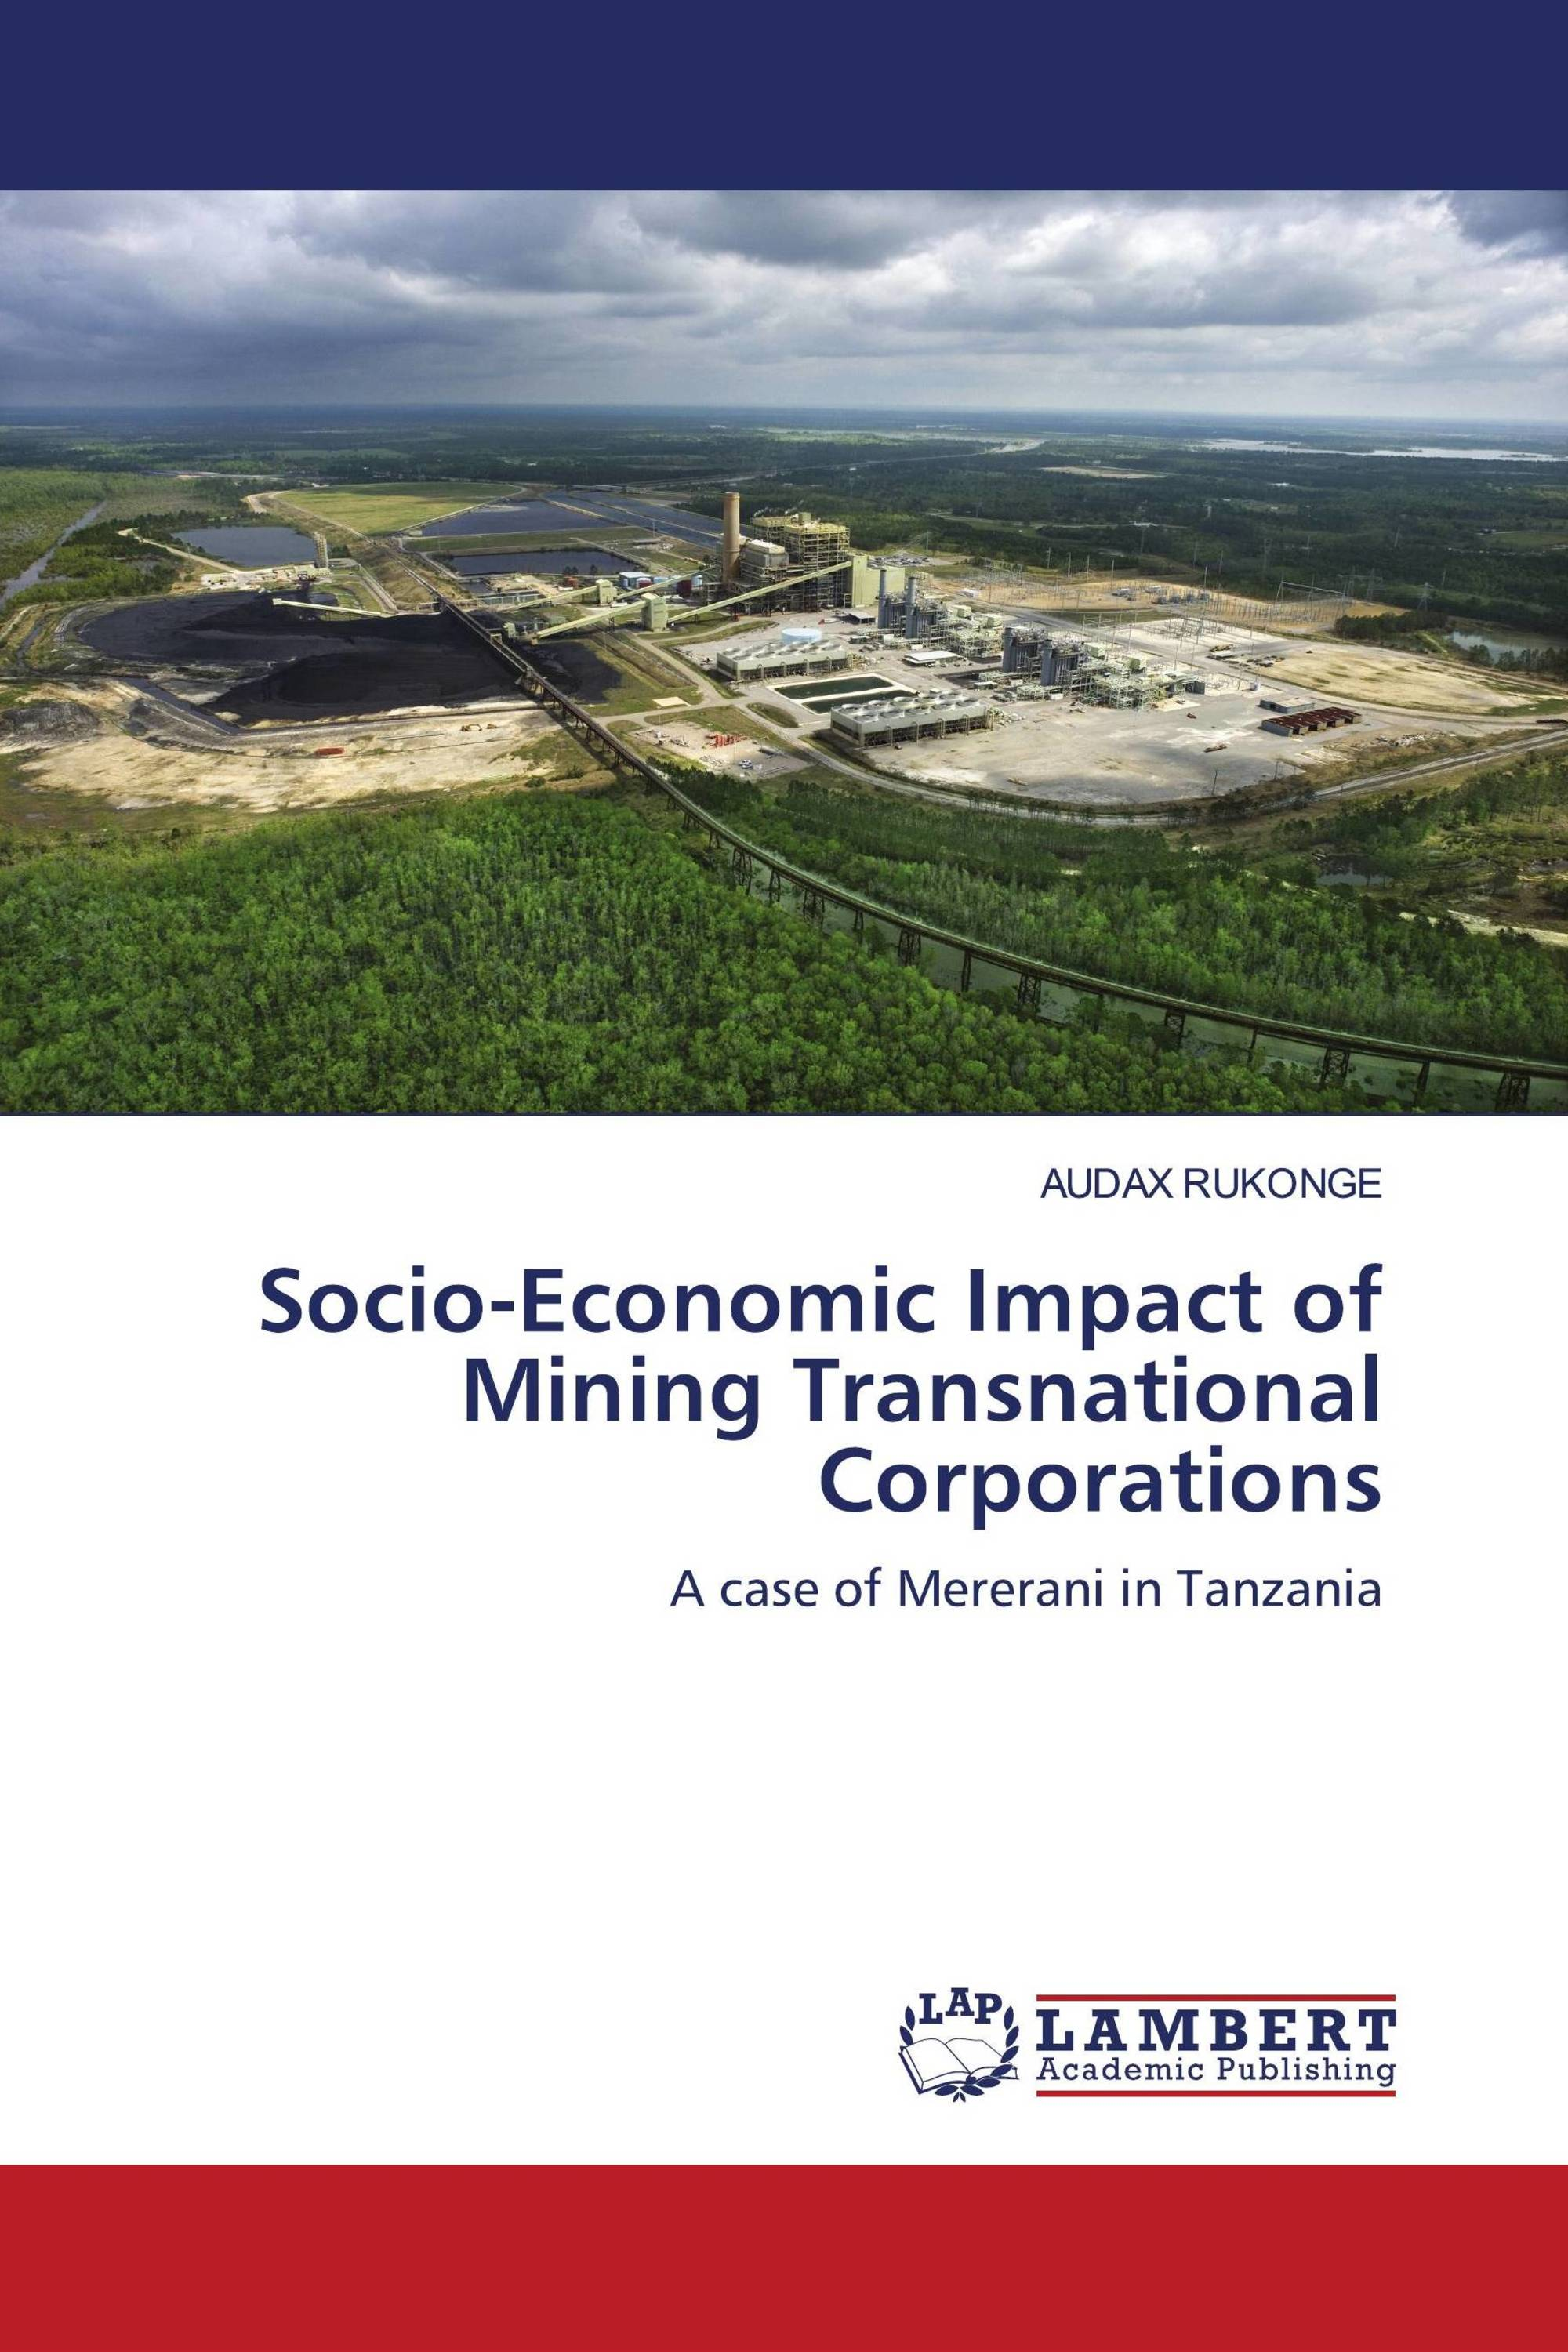 Socio-Economic Impact of Mining Transnational Corporations